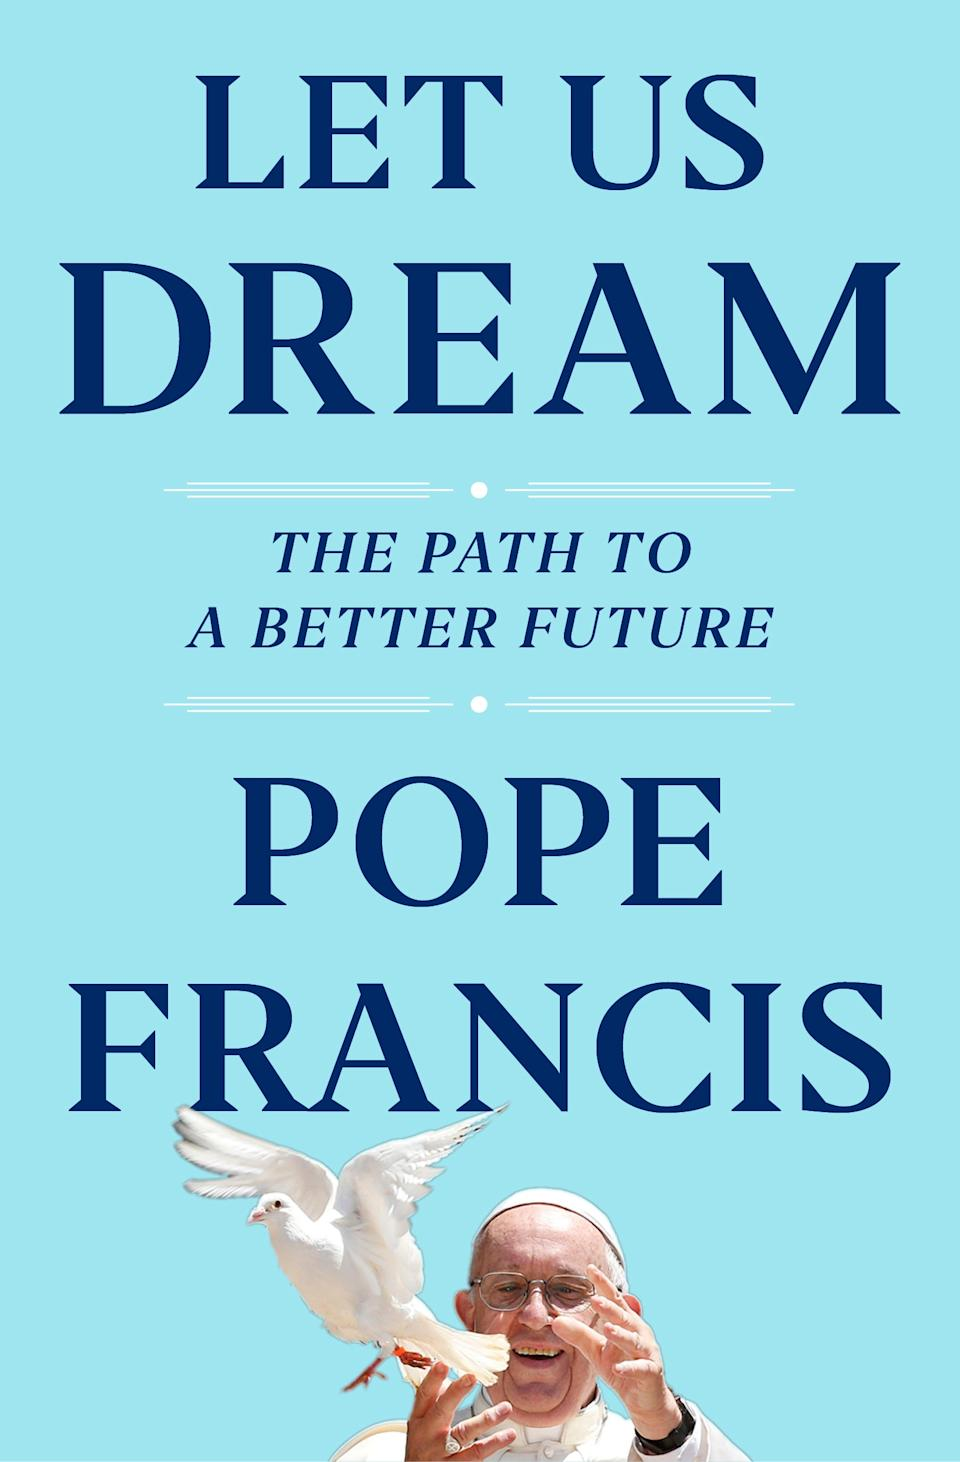 The cover of Let us Dream, the book, due out Dec. 1, that was ghost-written by Francis' English-language biographer, Austen Ivereigh. Pope Francis is supporting demands for racial justice in the wake of the U.S. police killing of George Floyd and is blasting COVID-19 skeptics and the media that spread their conspiracies in a new book penned during the Vatican's coronavirus lockdown.